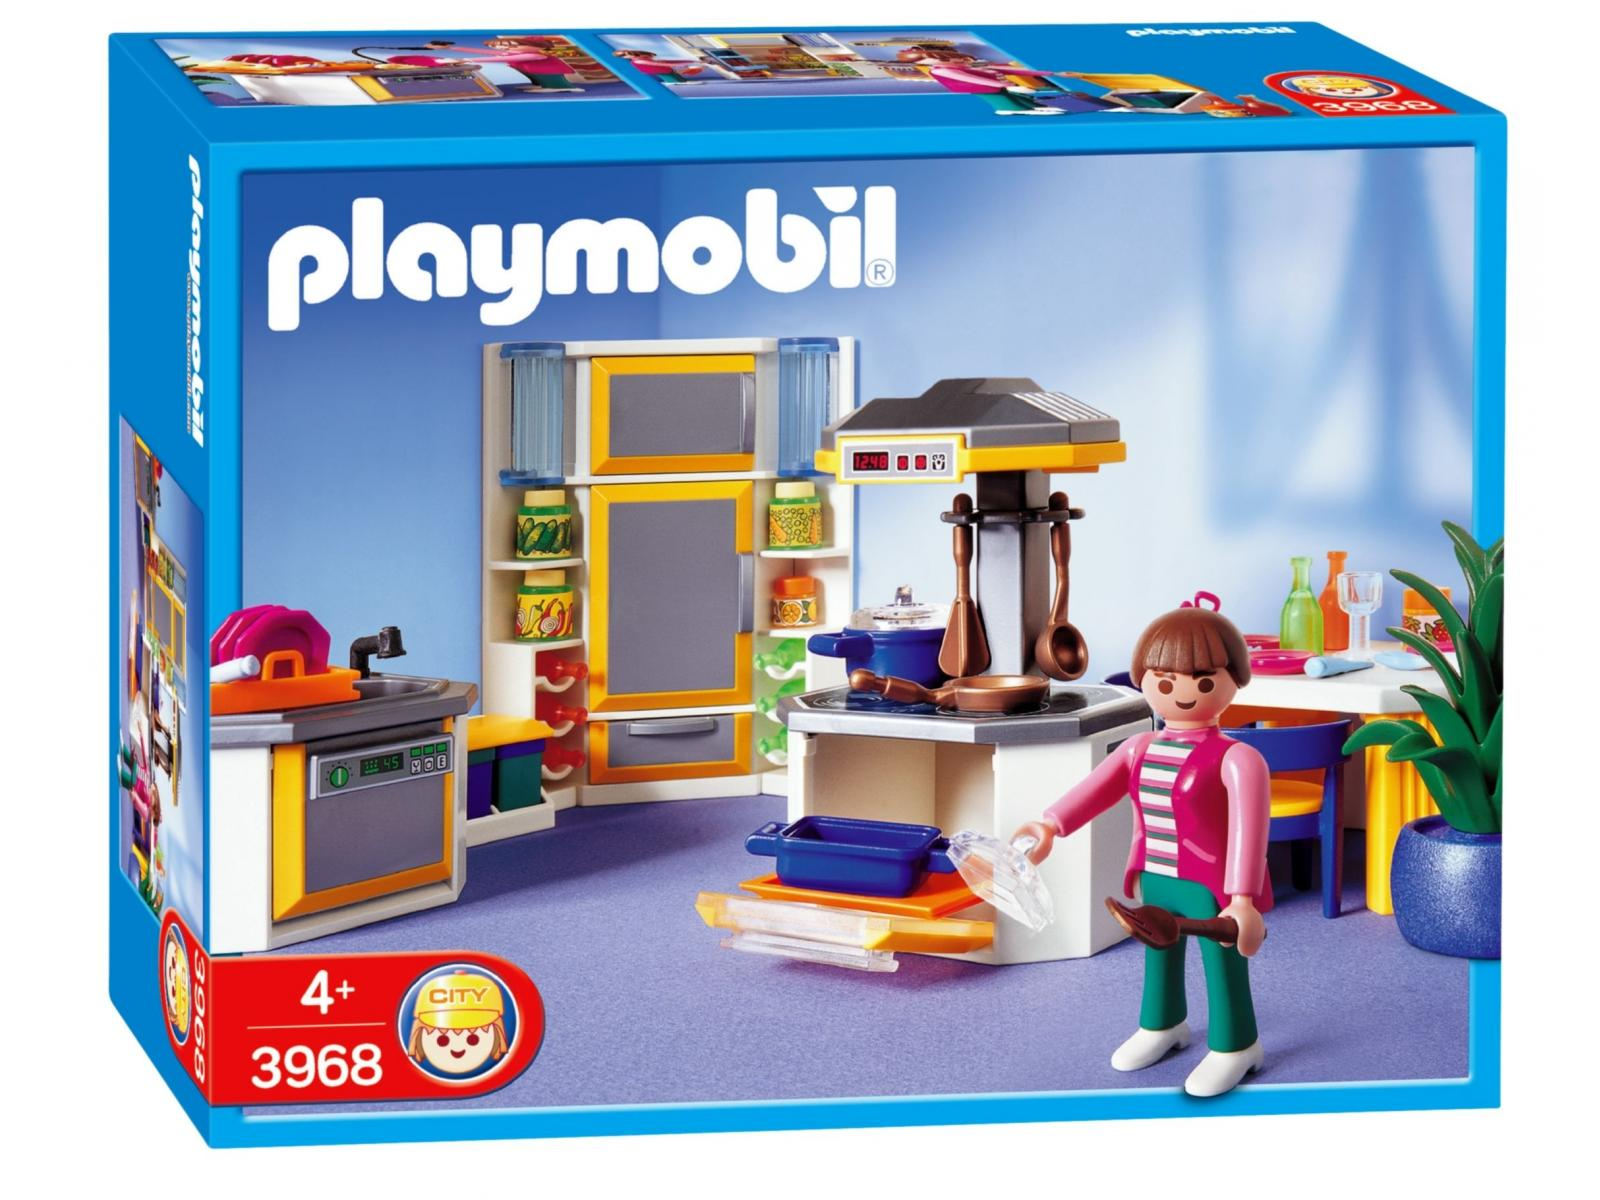 Beautiful cuisine maison moderne playmobil contemporary for Cuisine playmobil 5582